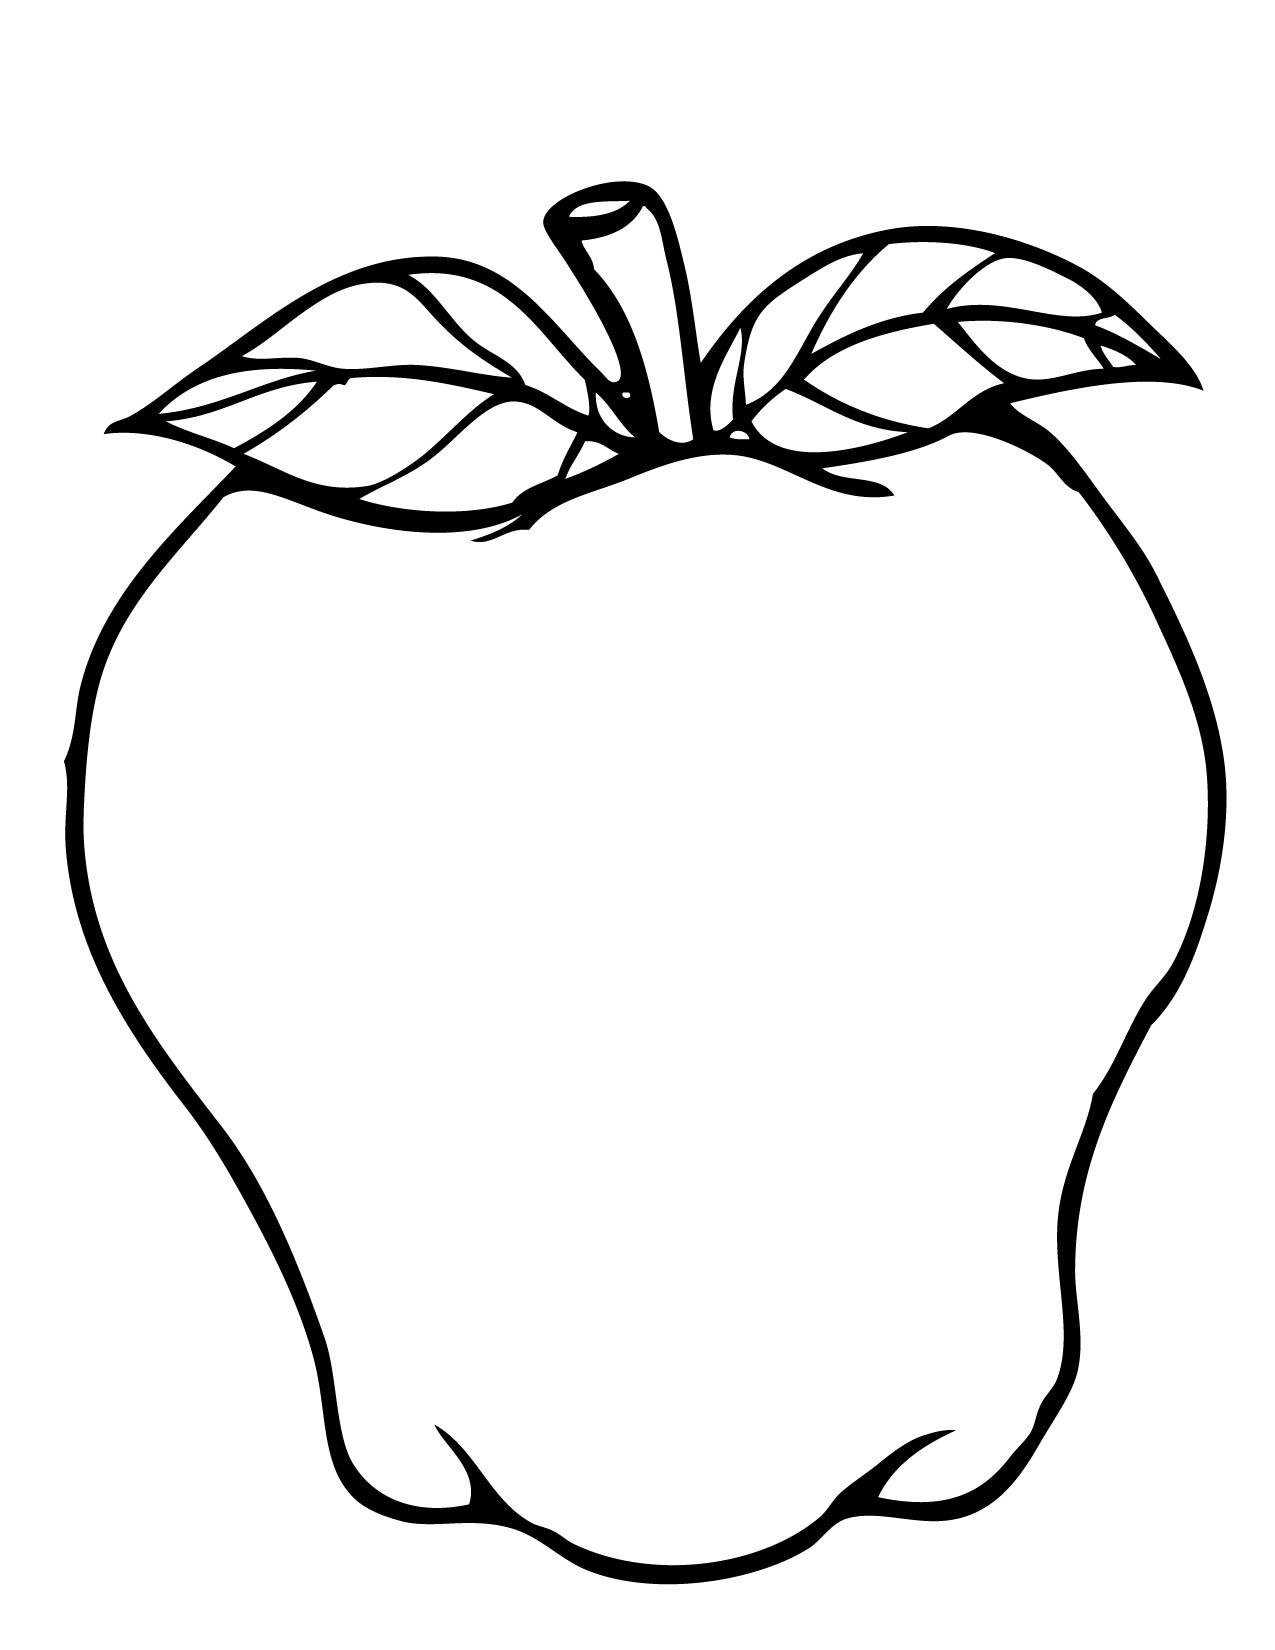 coloring pages for apples half apple drawing at getdrawingscom free for personal pages for apples coloring